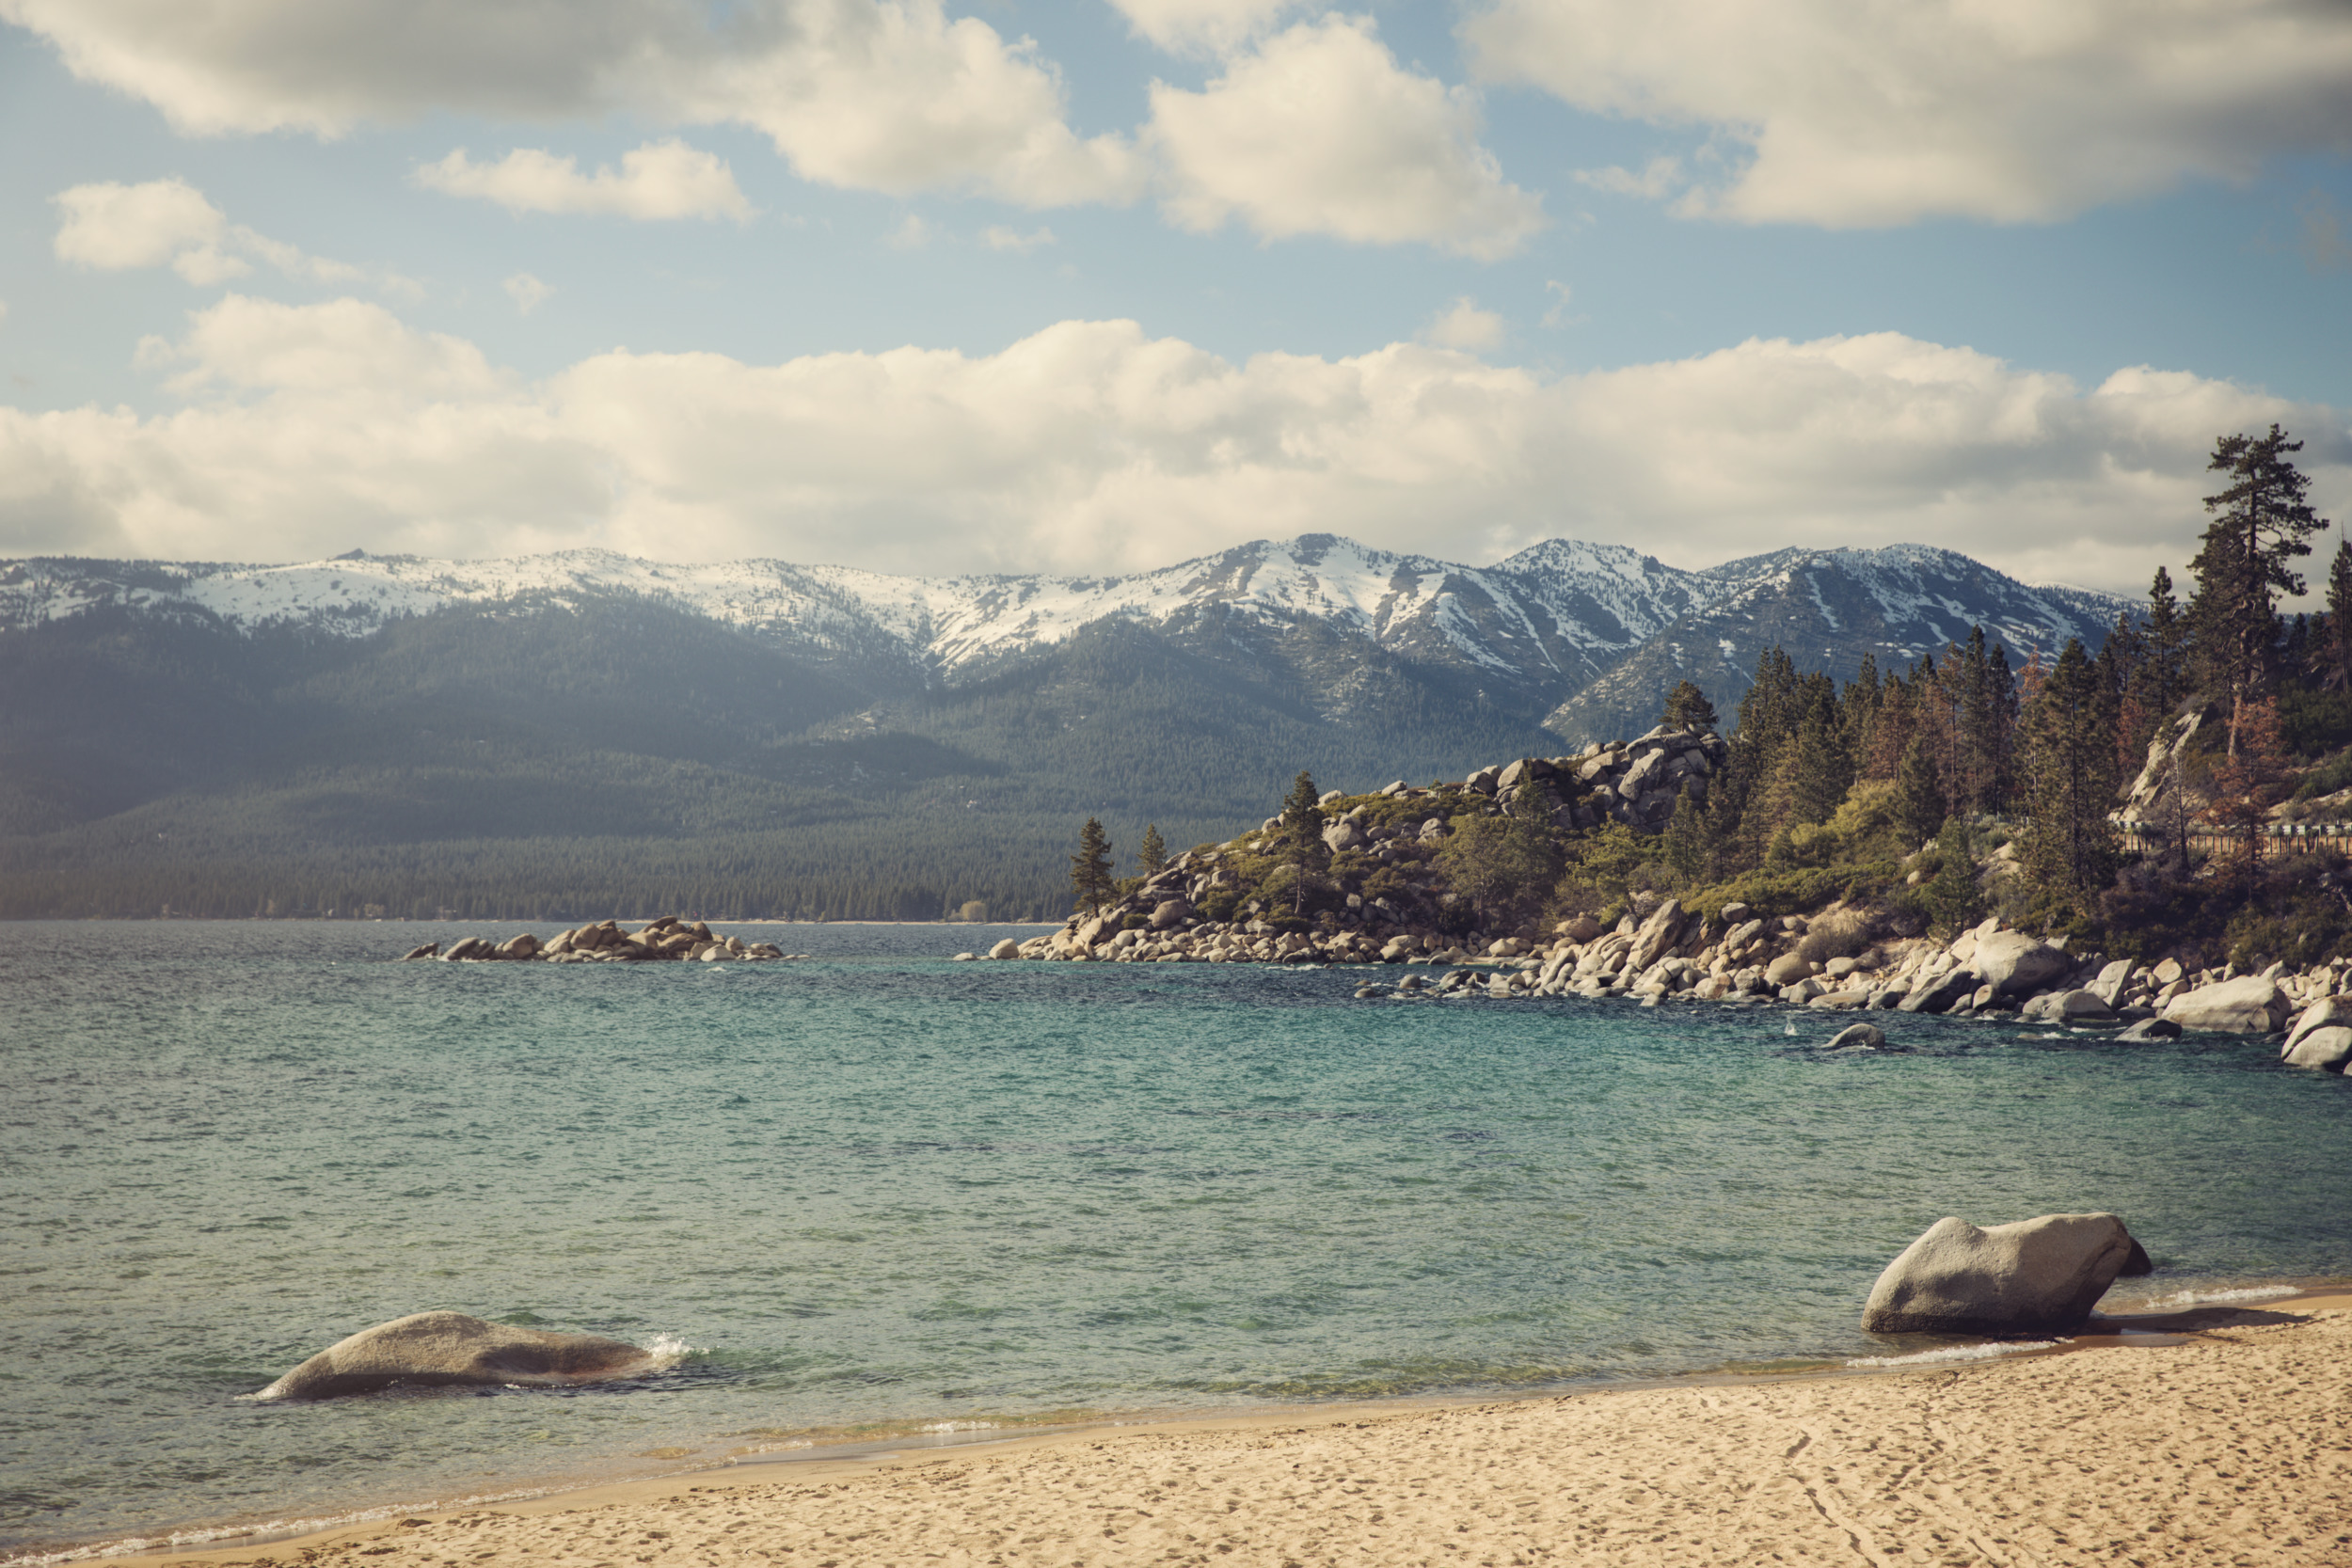 Dometic, beach, lake, mountain, clouds, sky, blue, water, rocks, forest, nature, wildlife